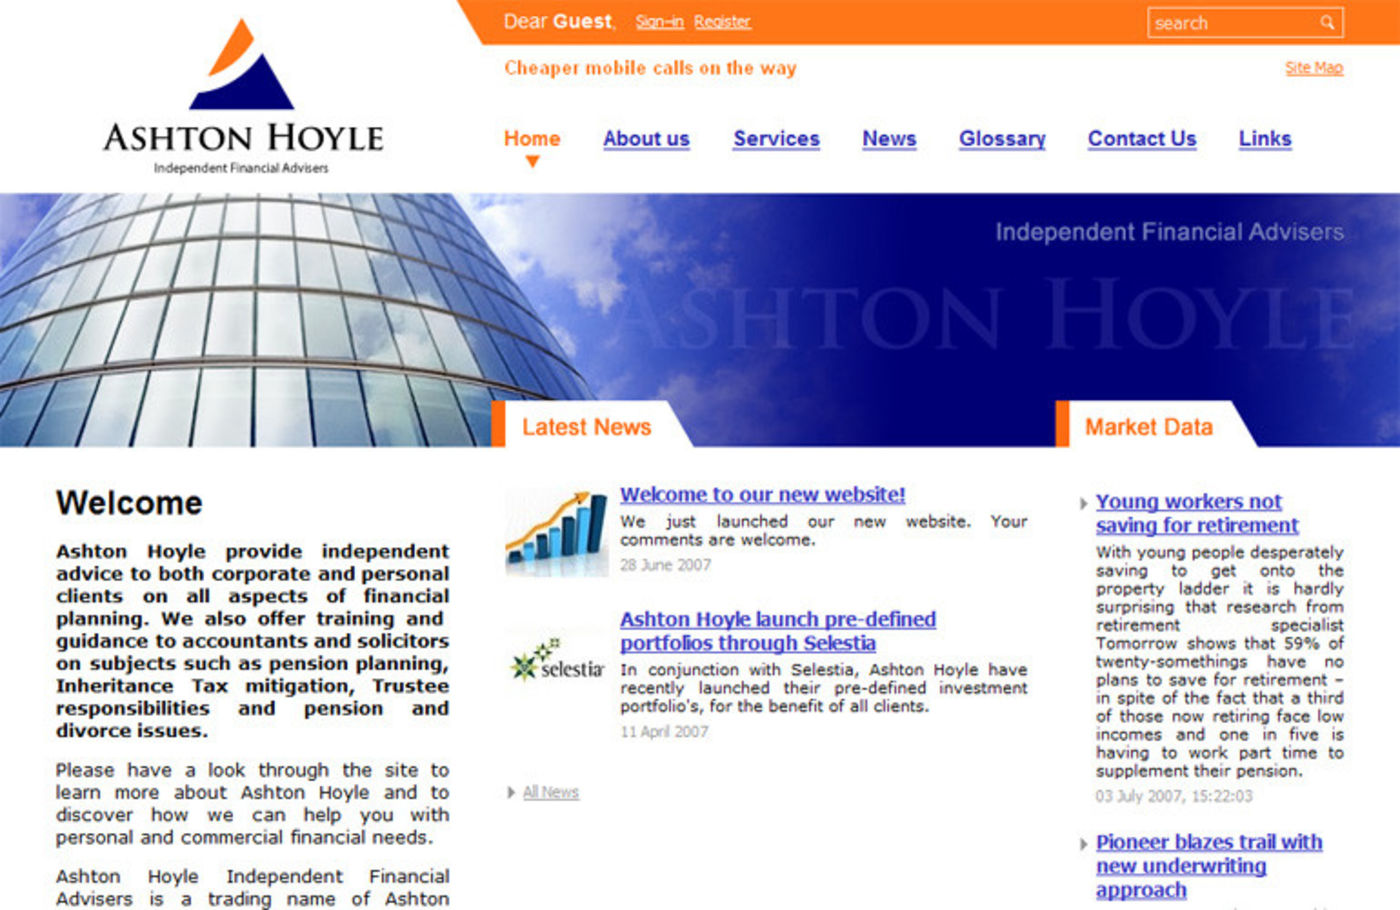 Ashton Hoyle Independent Financial Advisers Homepage header - Ashton Hoyle